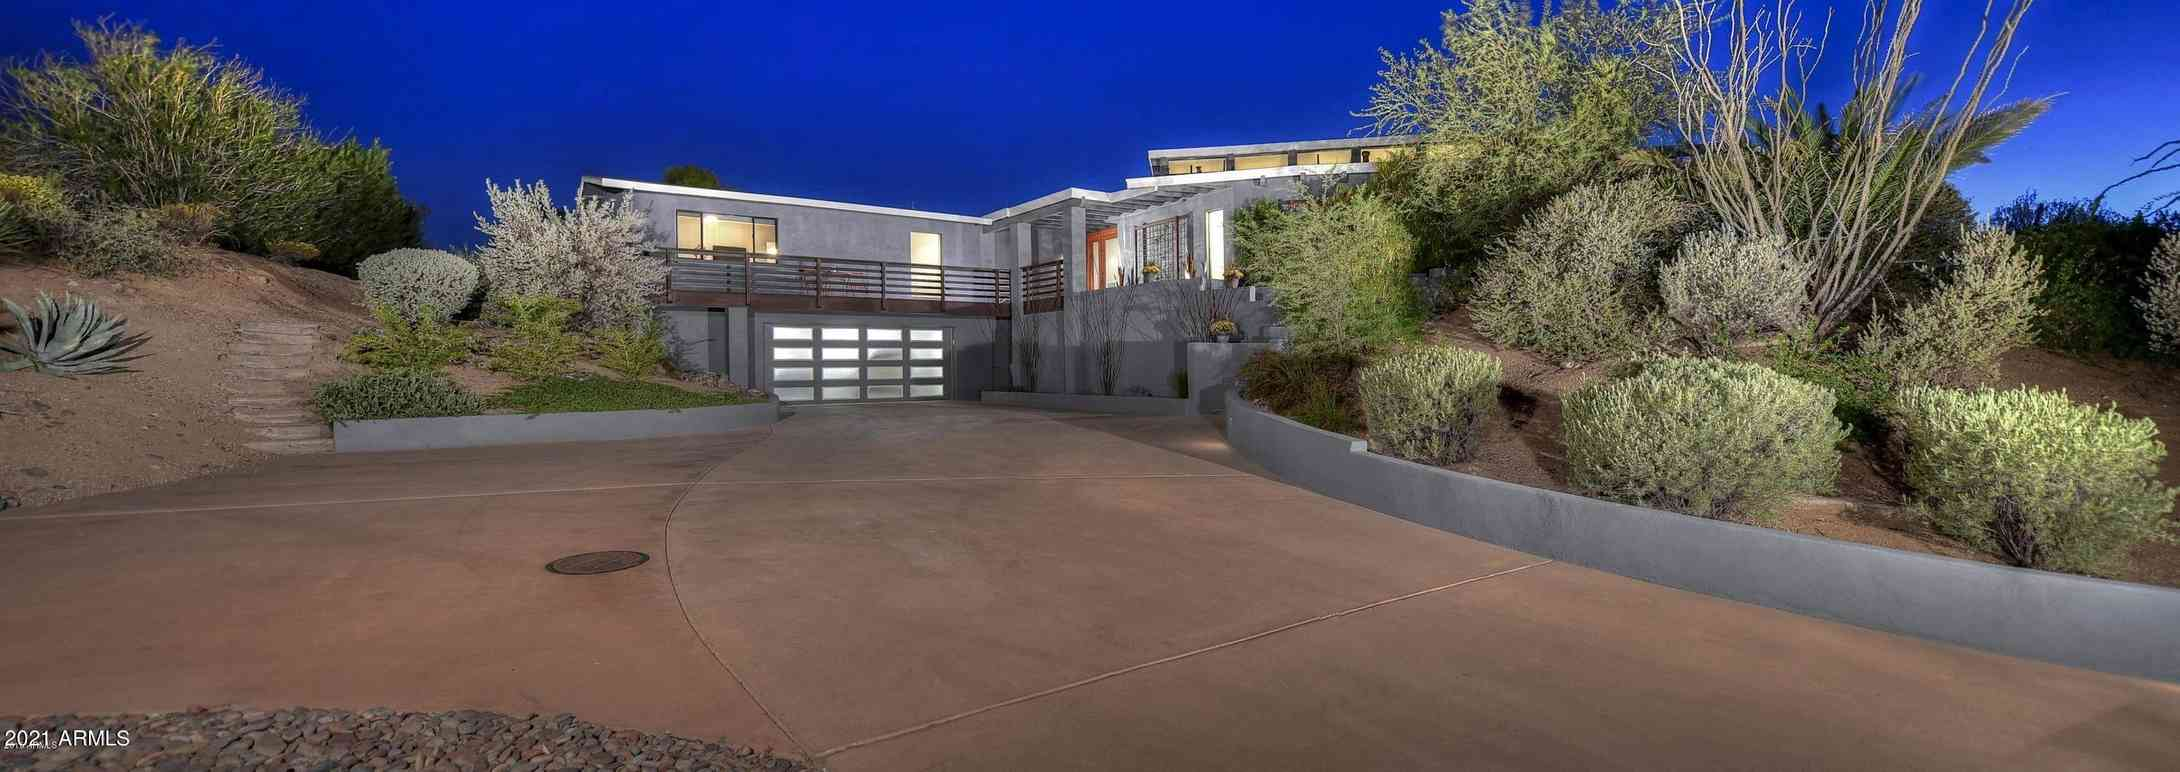 8545 E Double Eagle Drive, Carefree, AZ, 85377,